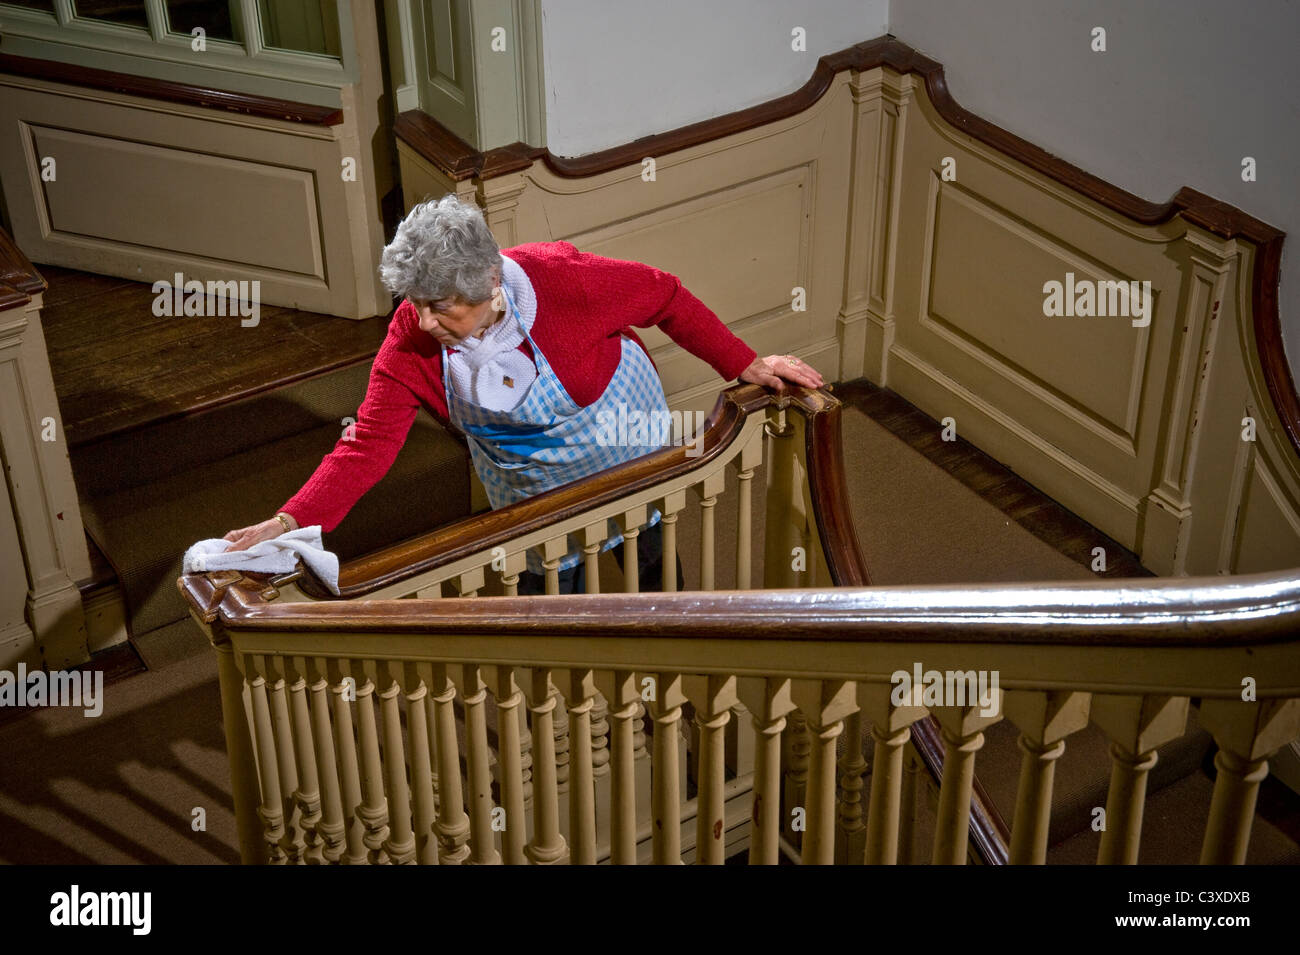 Votre topic pastiché du jour - Page 15 Old-woman-cleaning-handrail-on-stairs-philadelphia-usa-C3XDXB